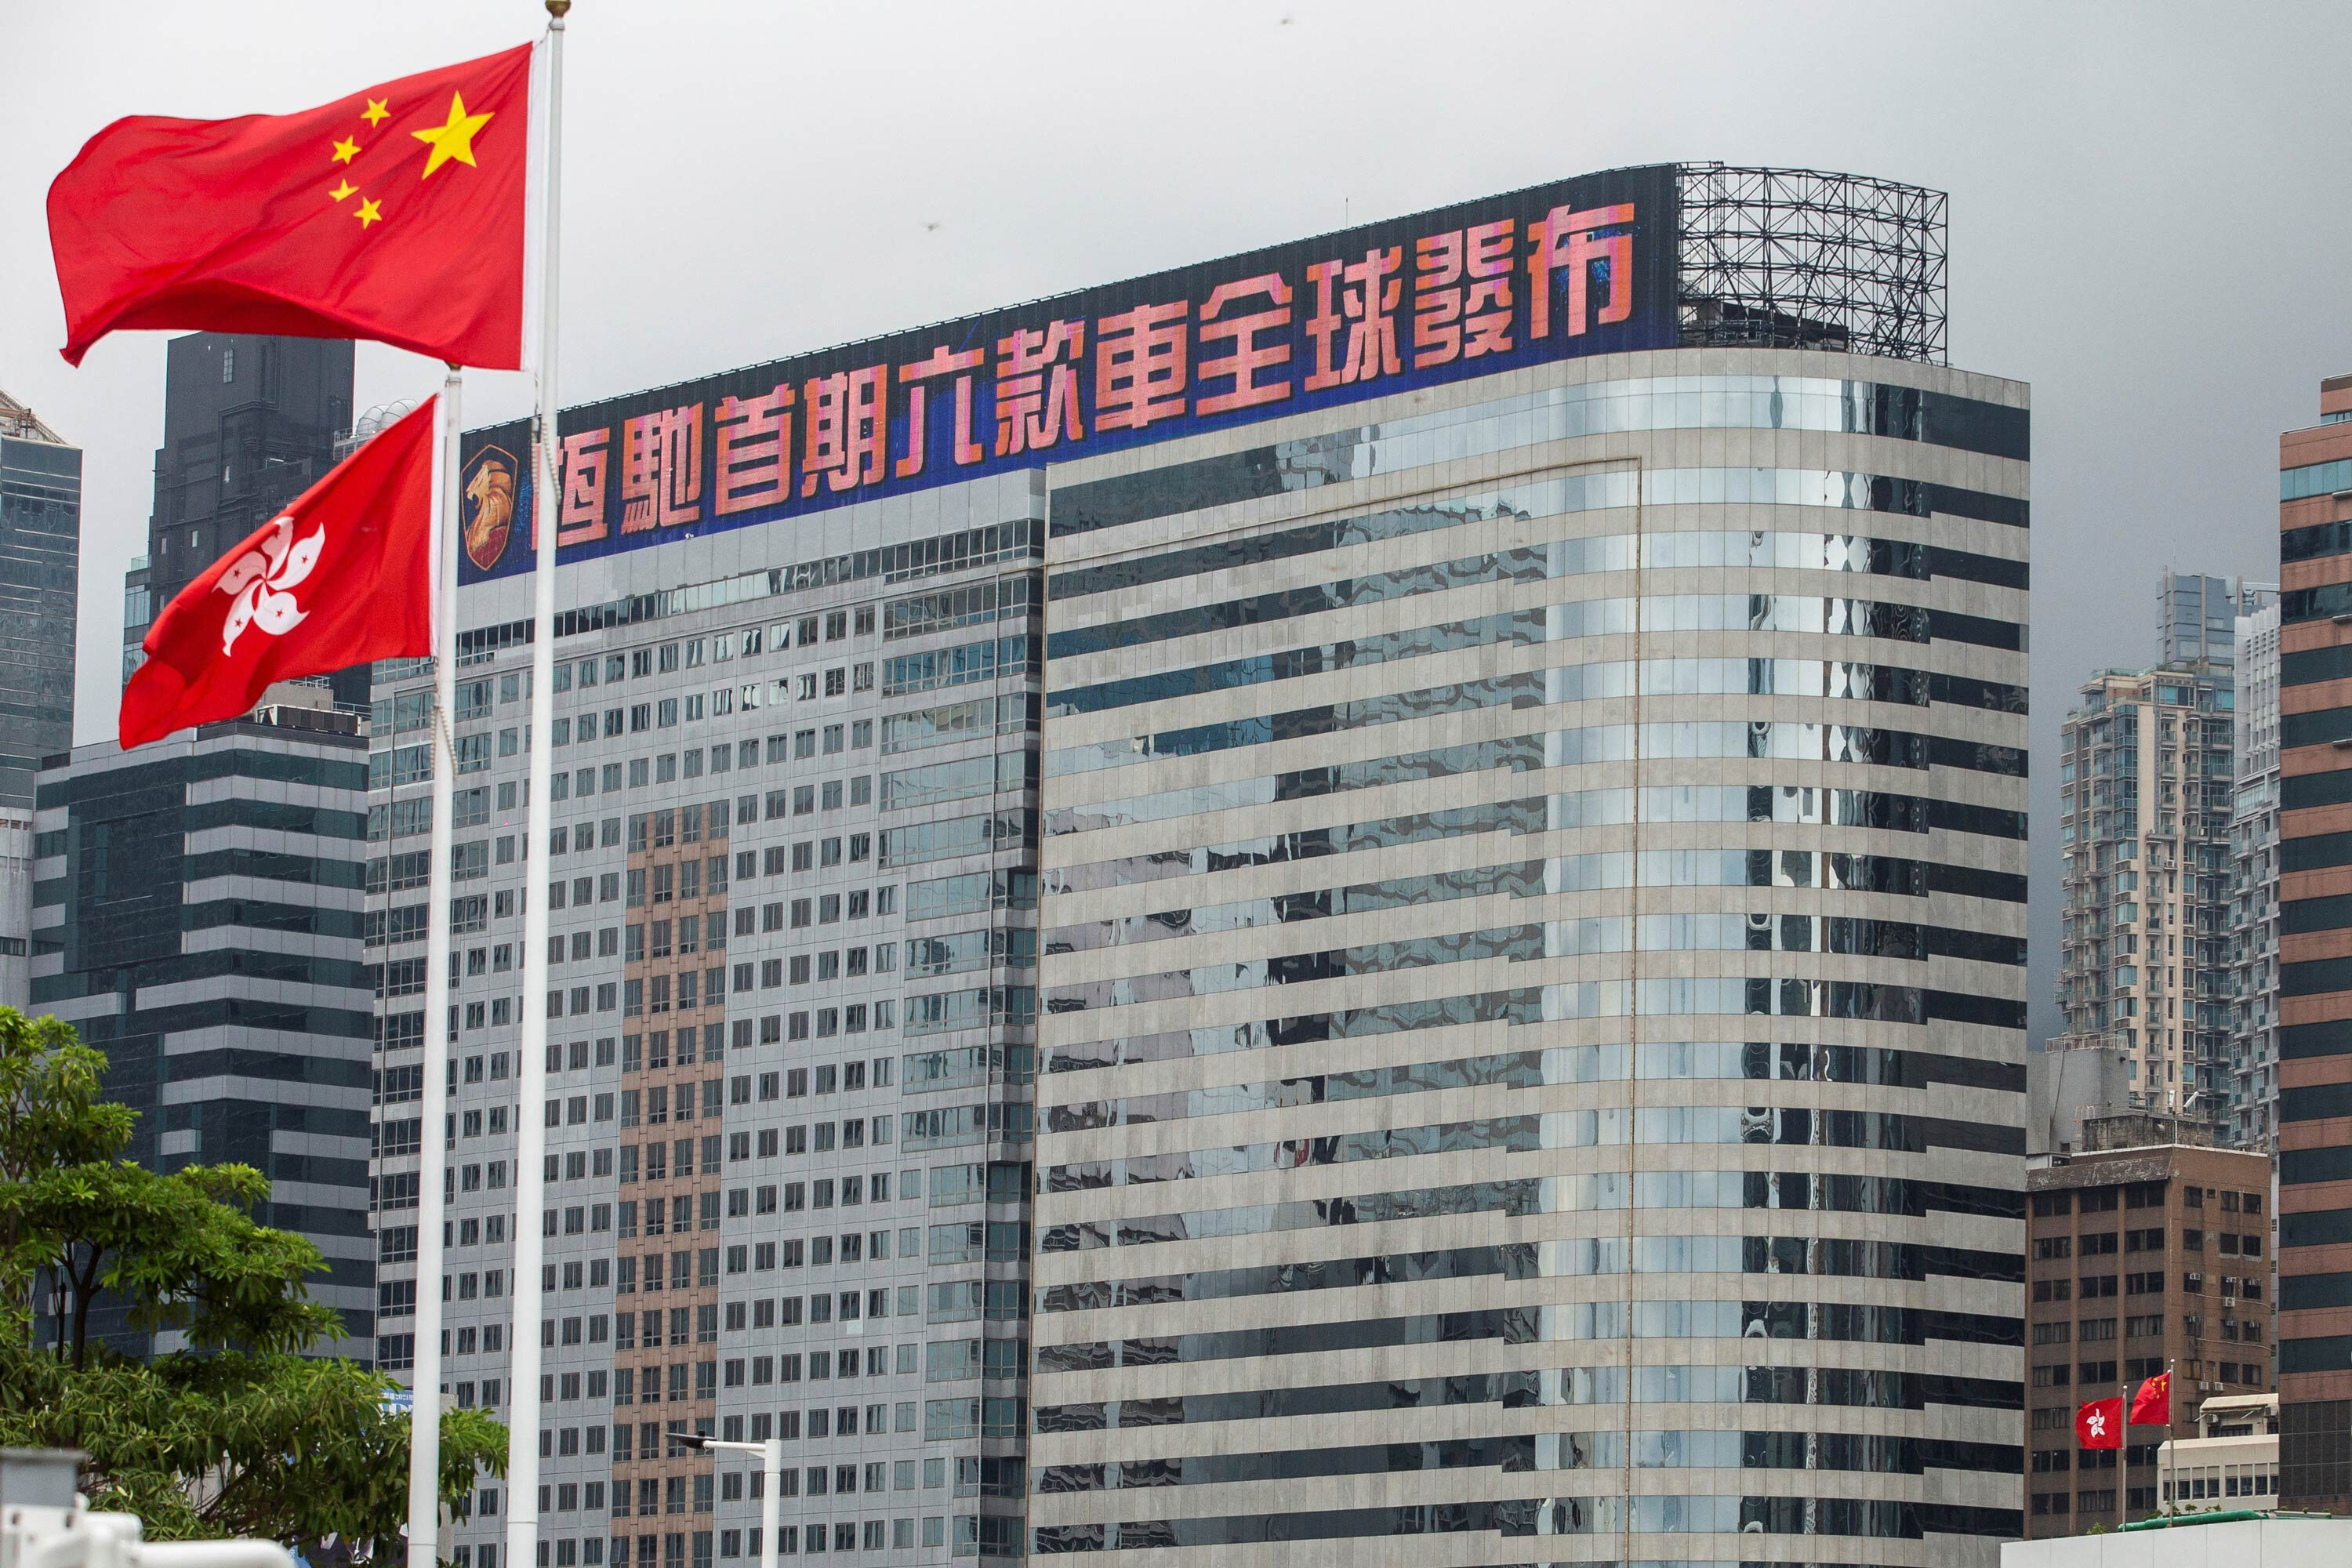 5 things to know about Evergrande, the Chinese business empire on the brink